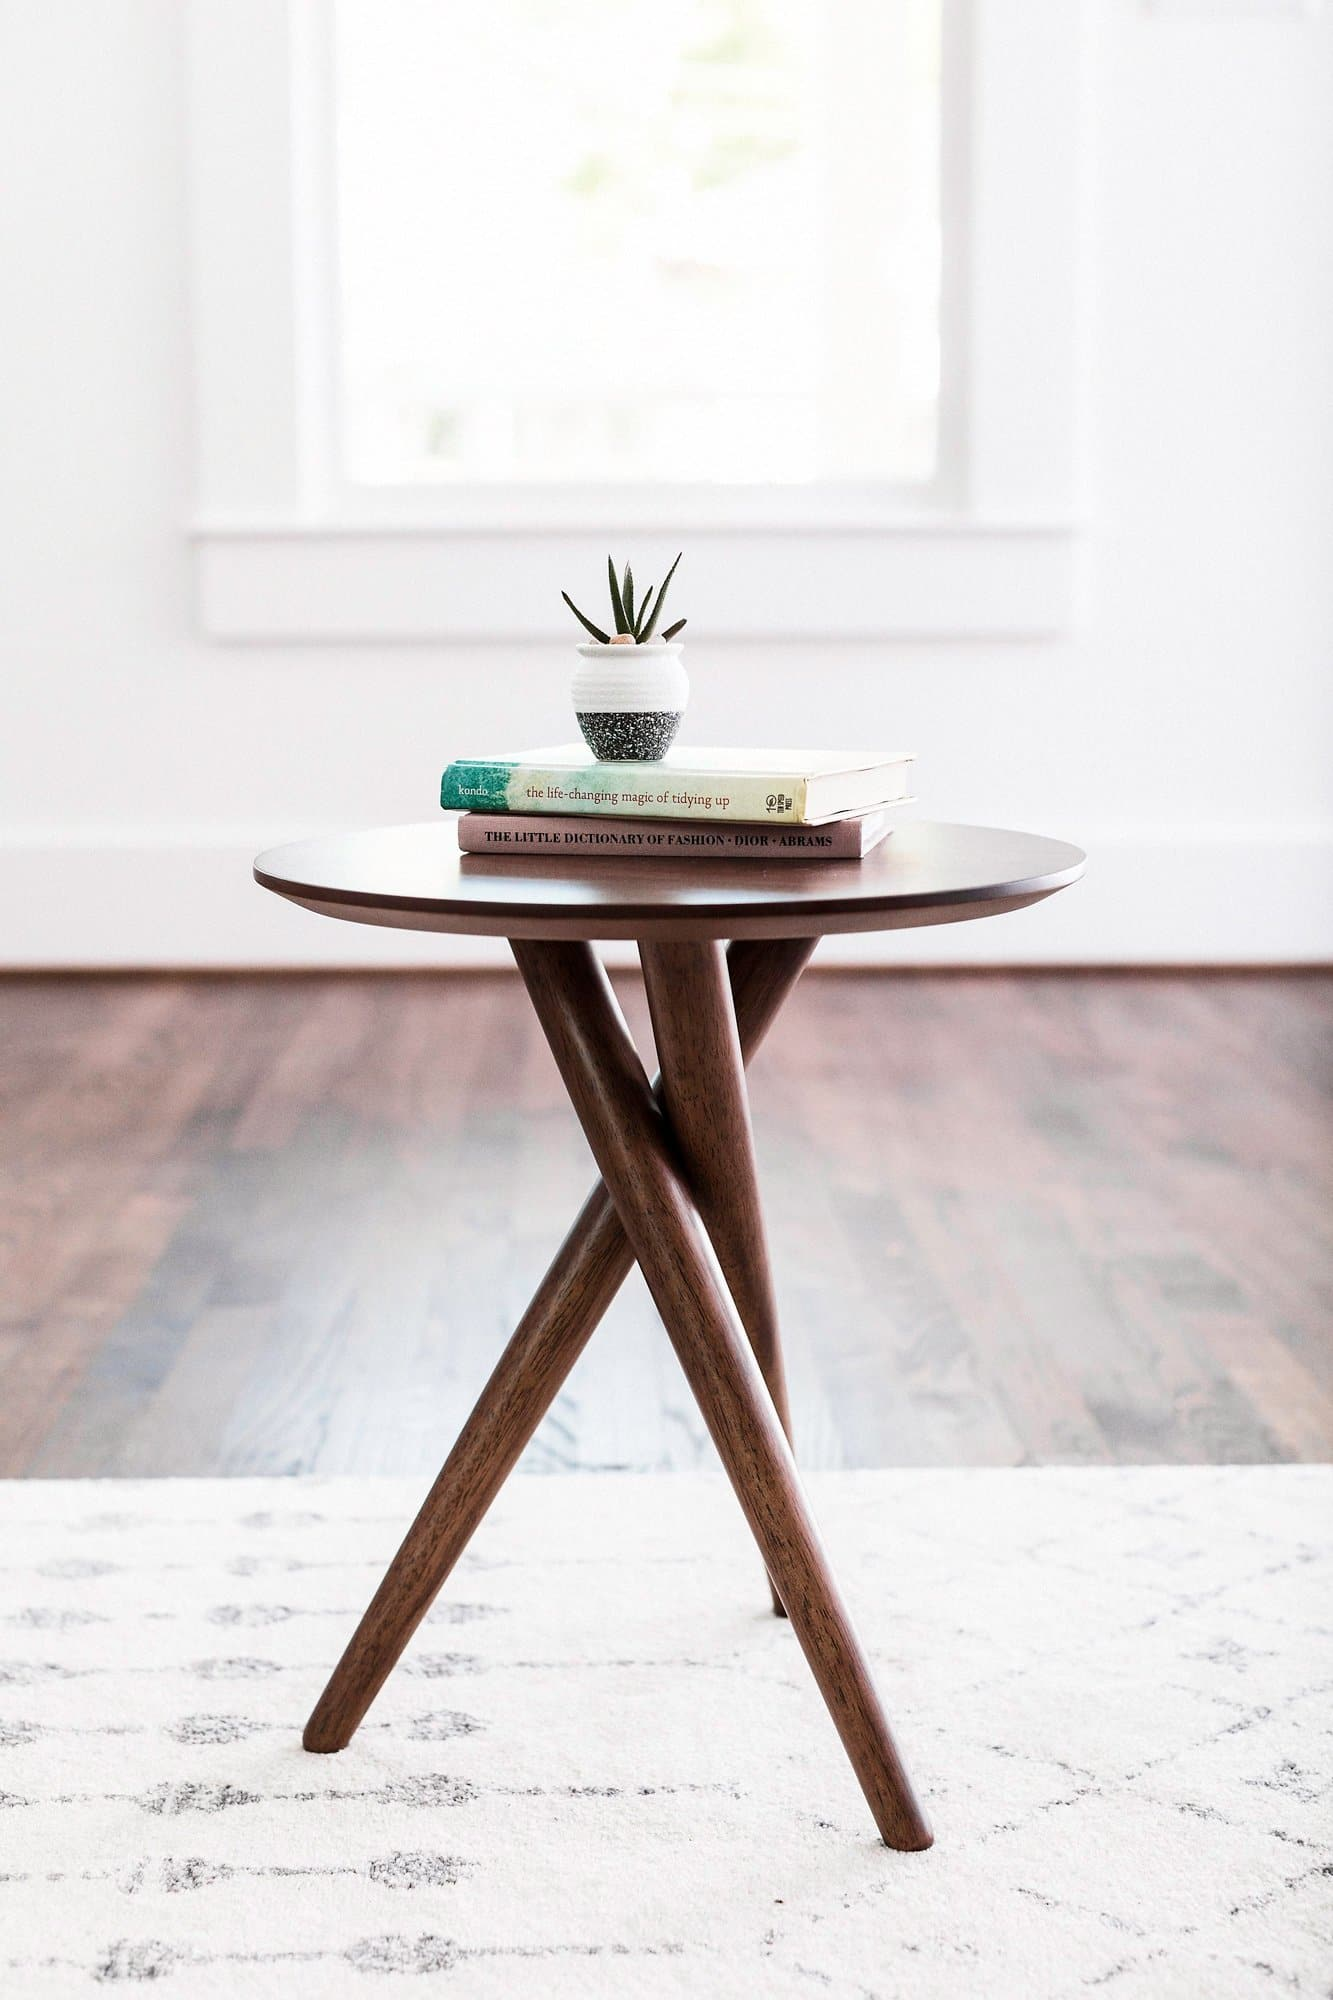 Image of: Fordham Mid Century Modern End Table Tripod Small Side Table Edloe Finch Furniture Co